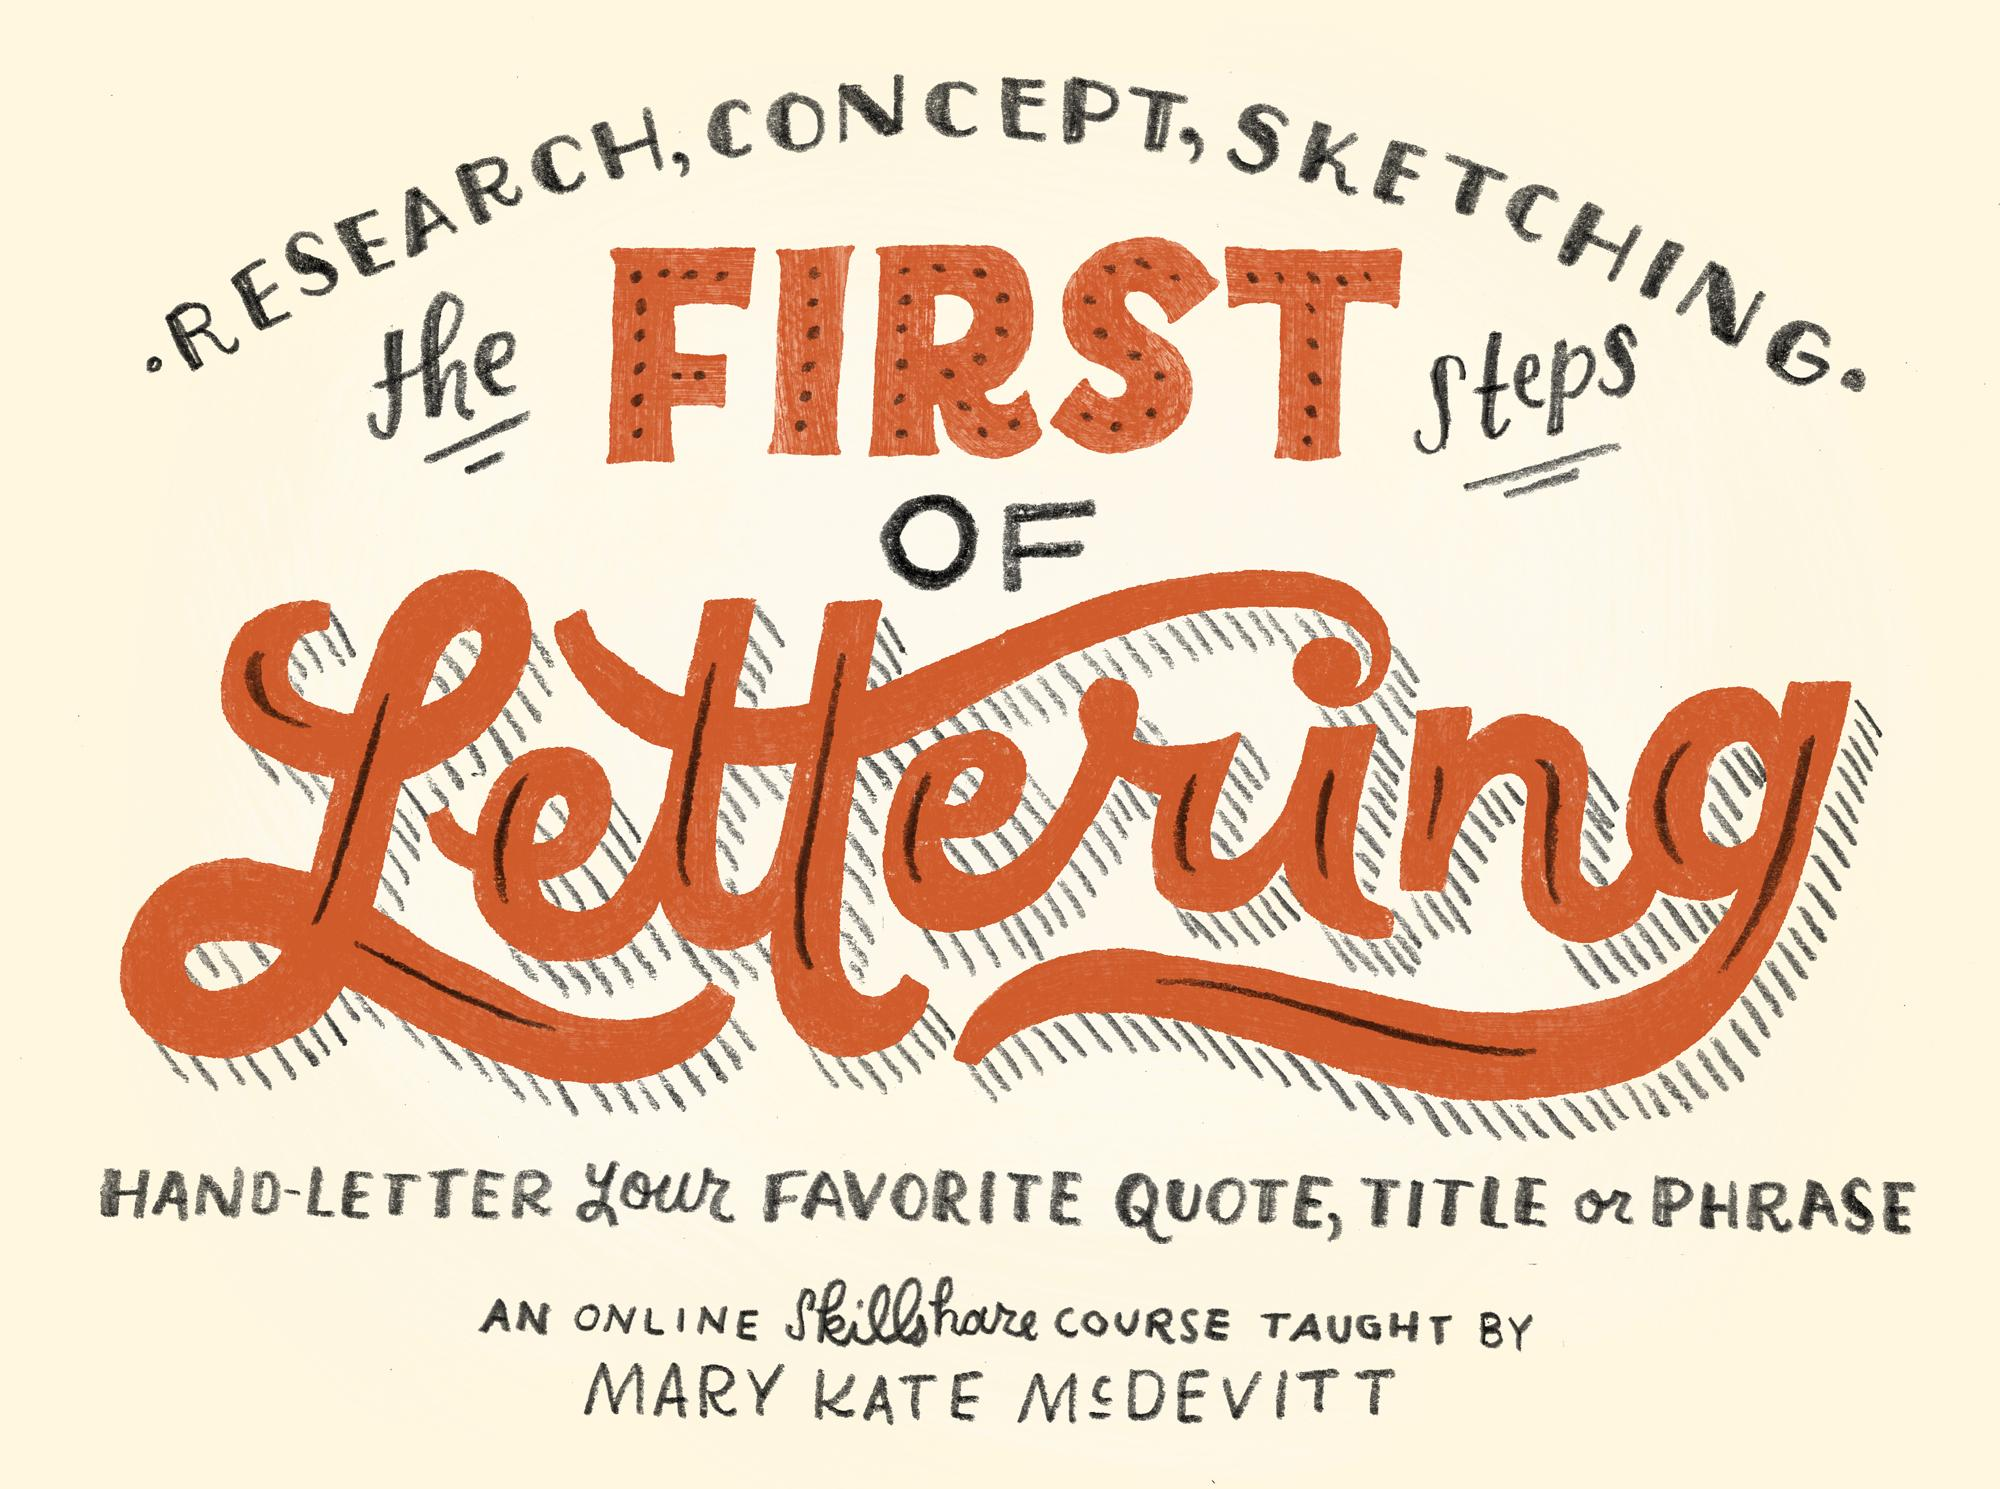 Skillshare - The First Steps of Hand-Lettering: Concept to Sketch